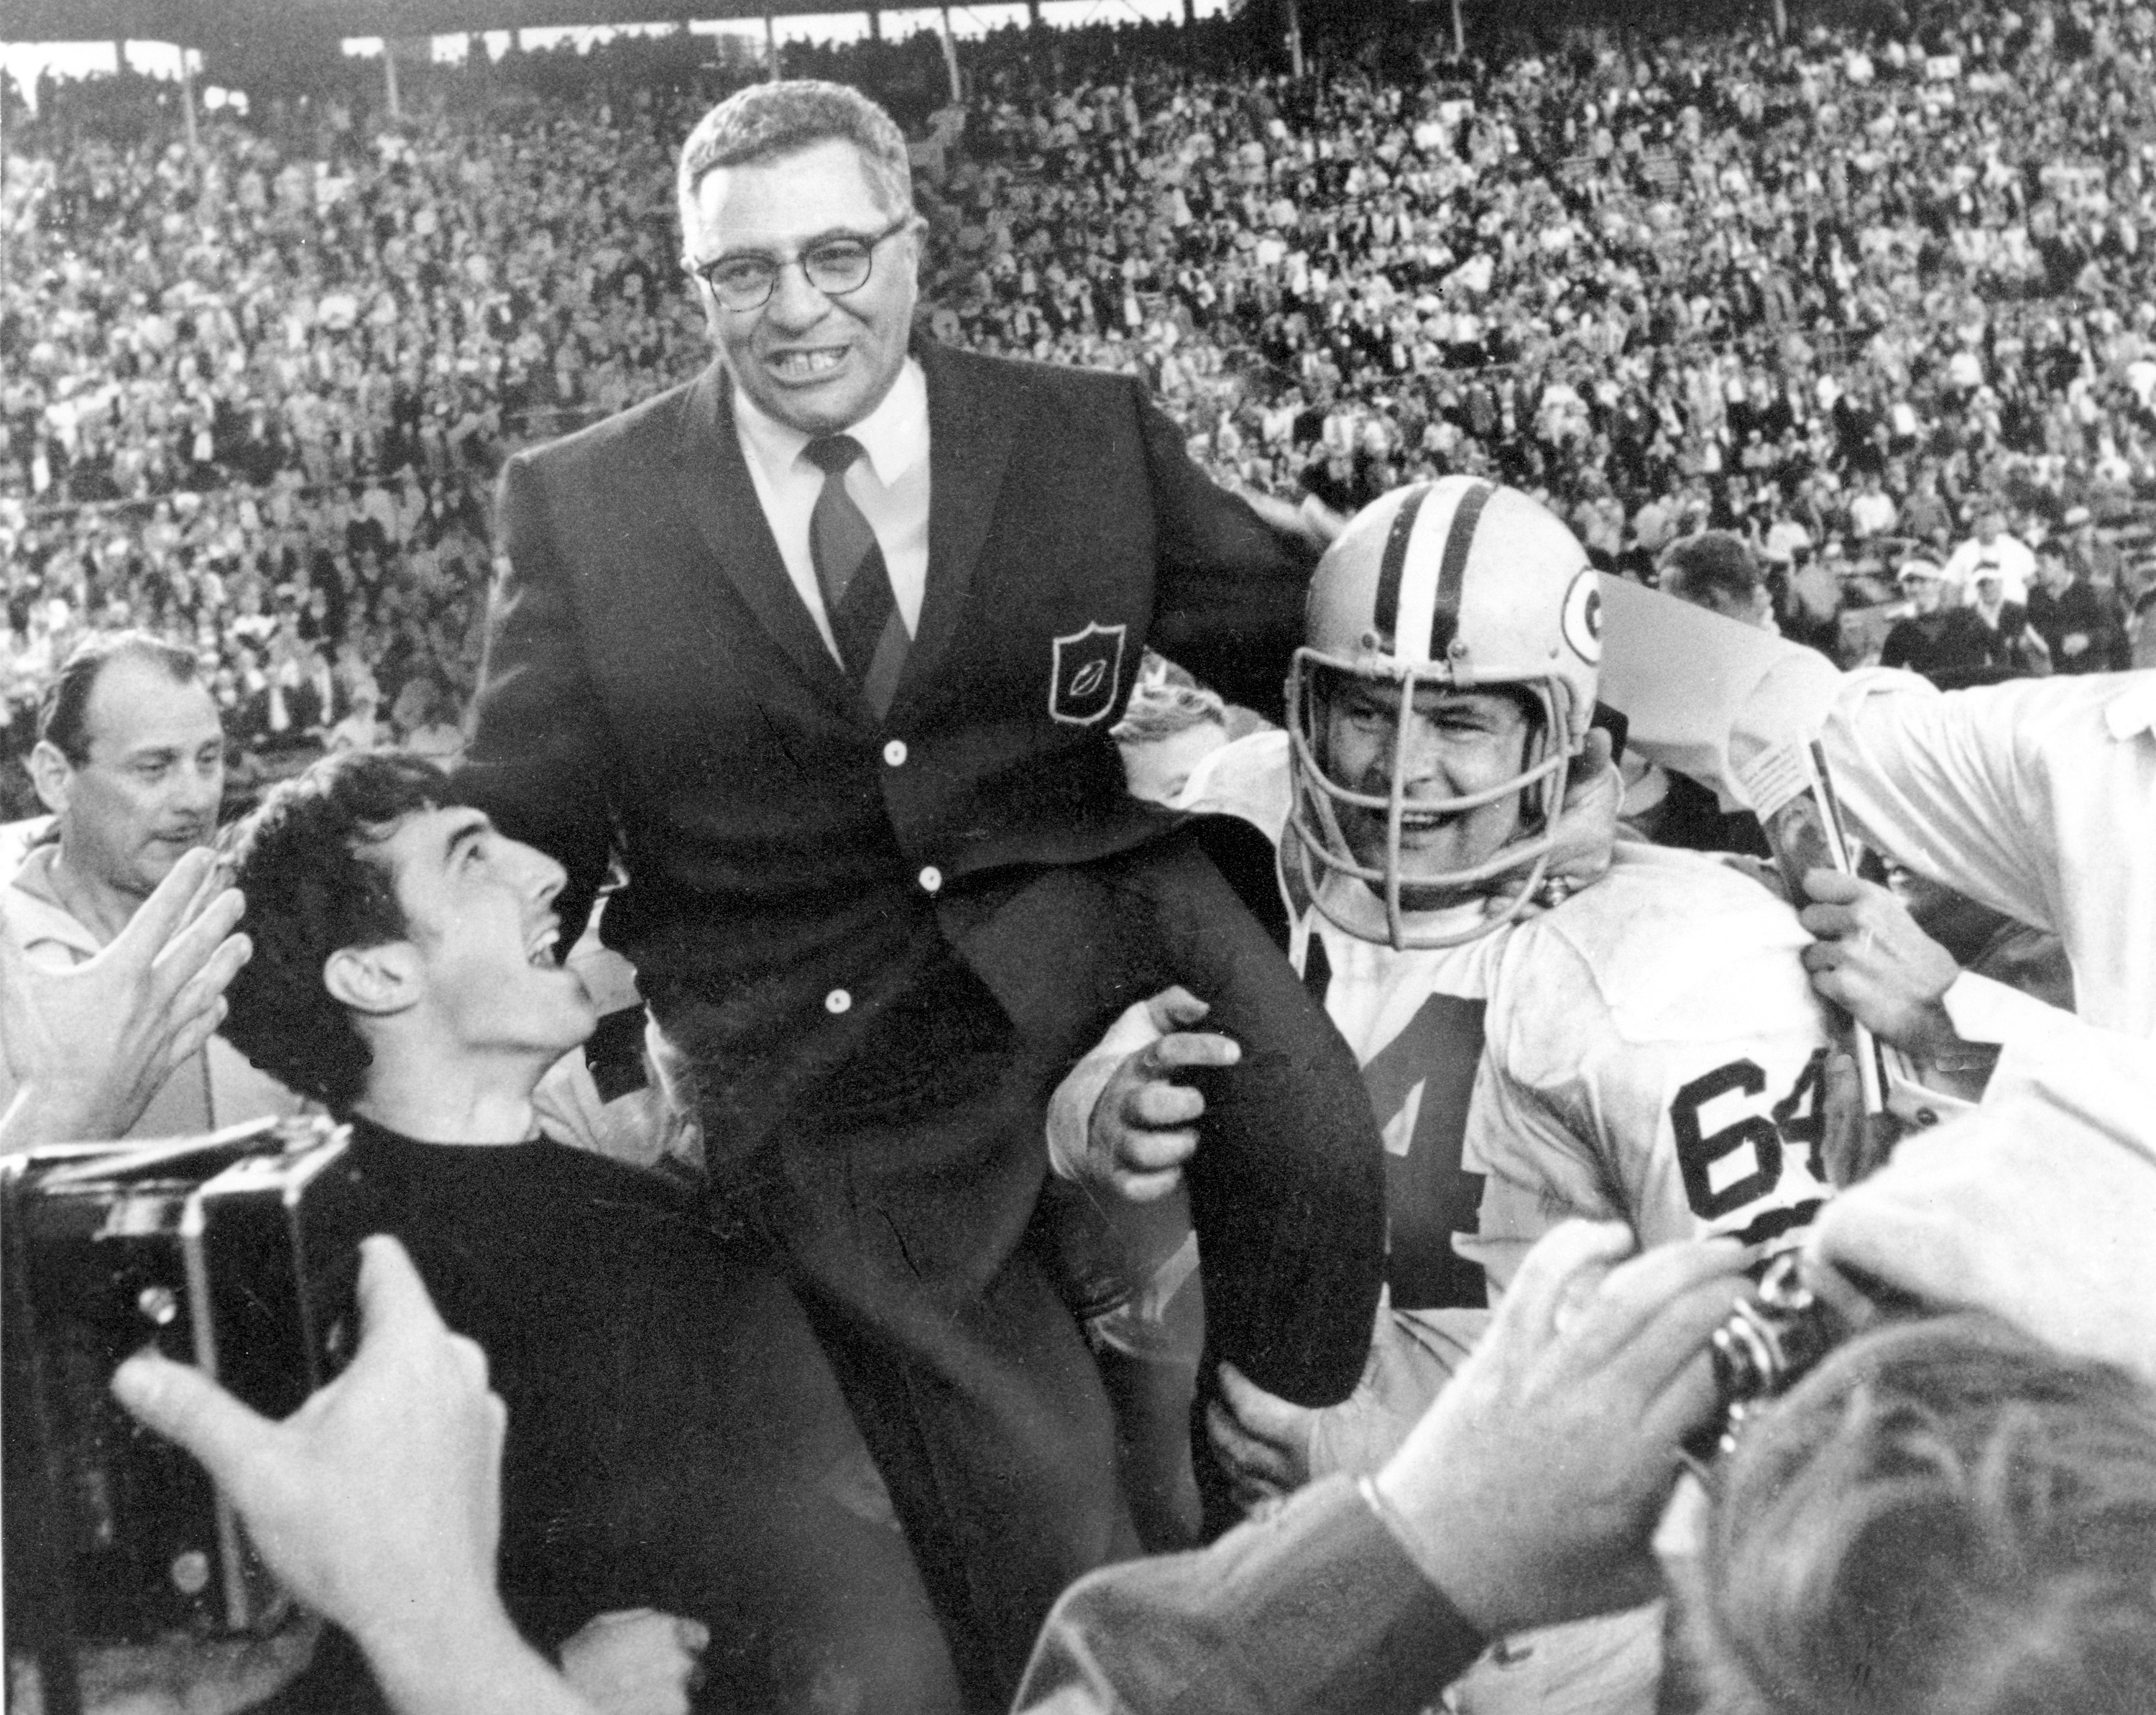 Naturally late Packers coach Vince Lombardi would get a shoutout while Aaron Rodgers is serving as guest host.